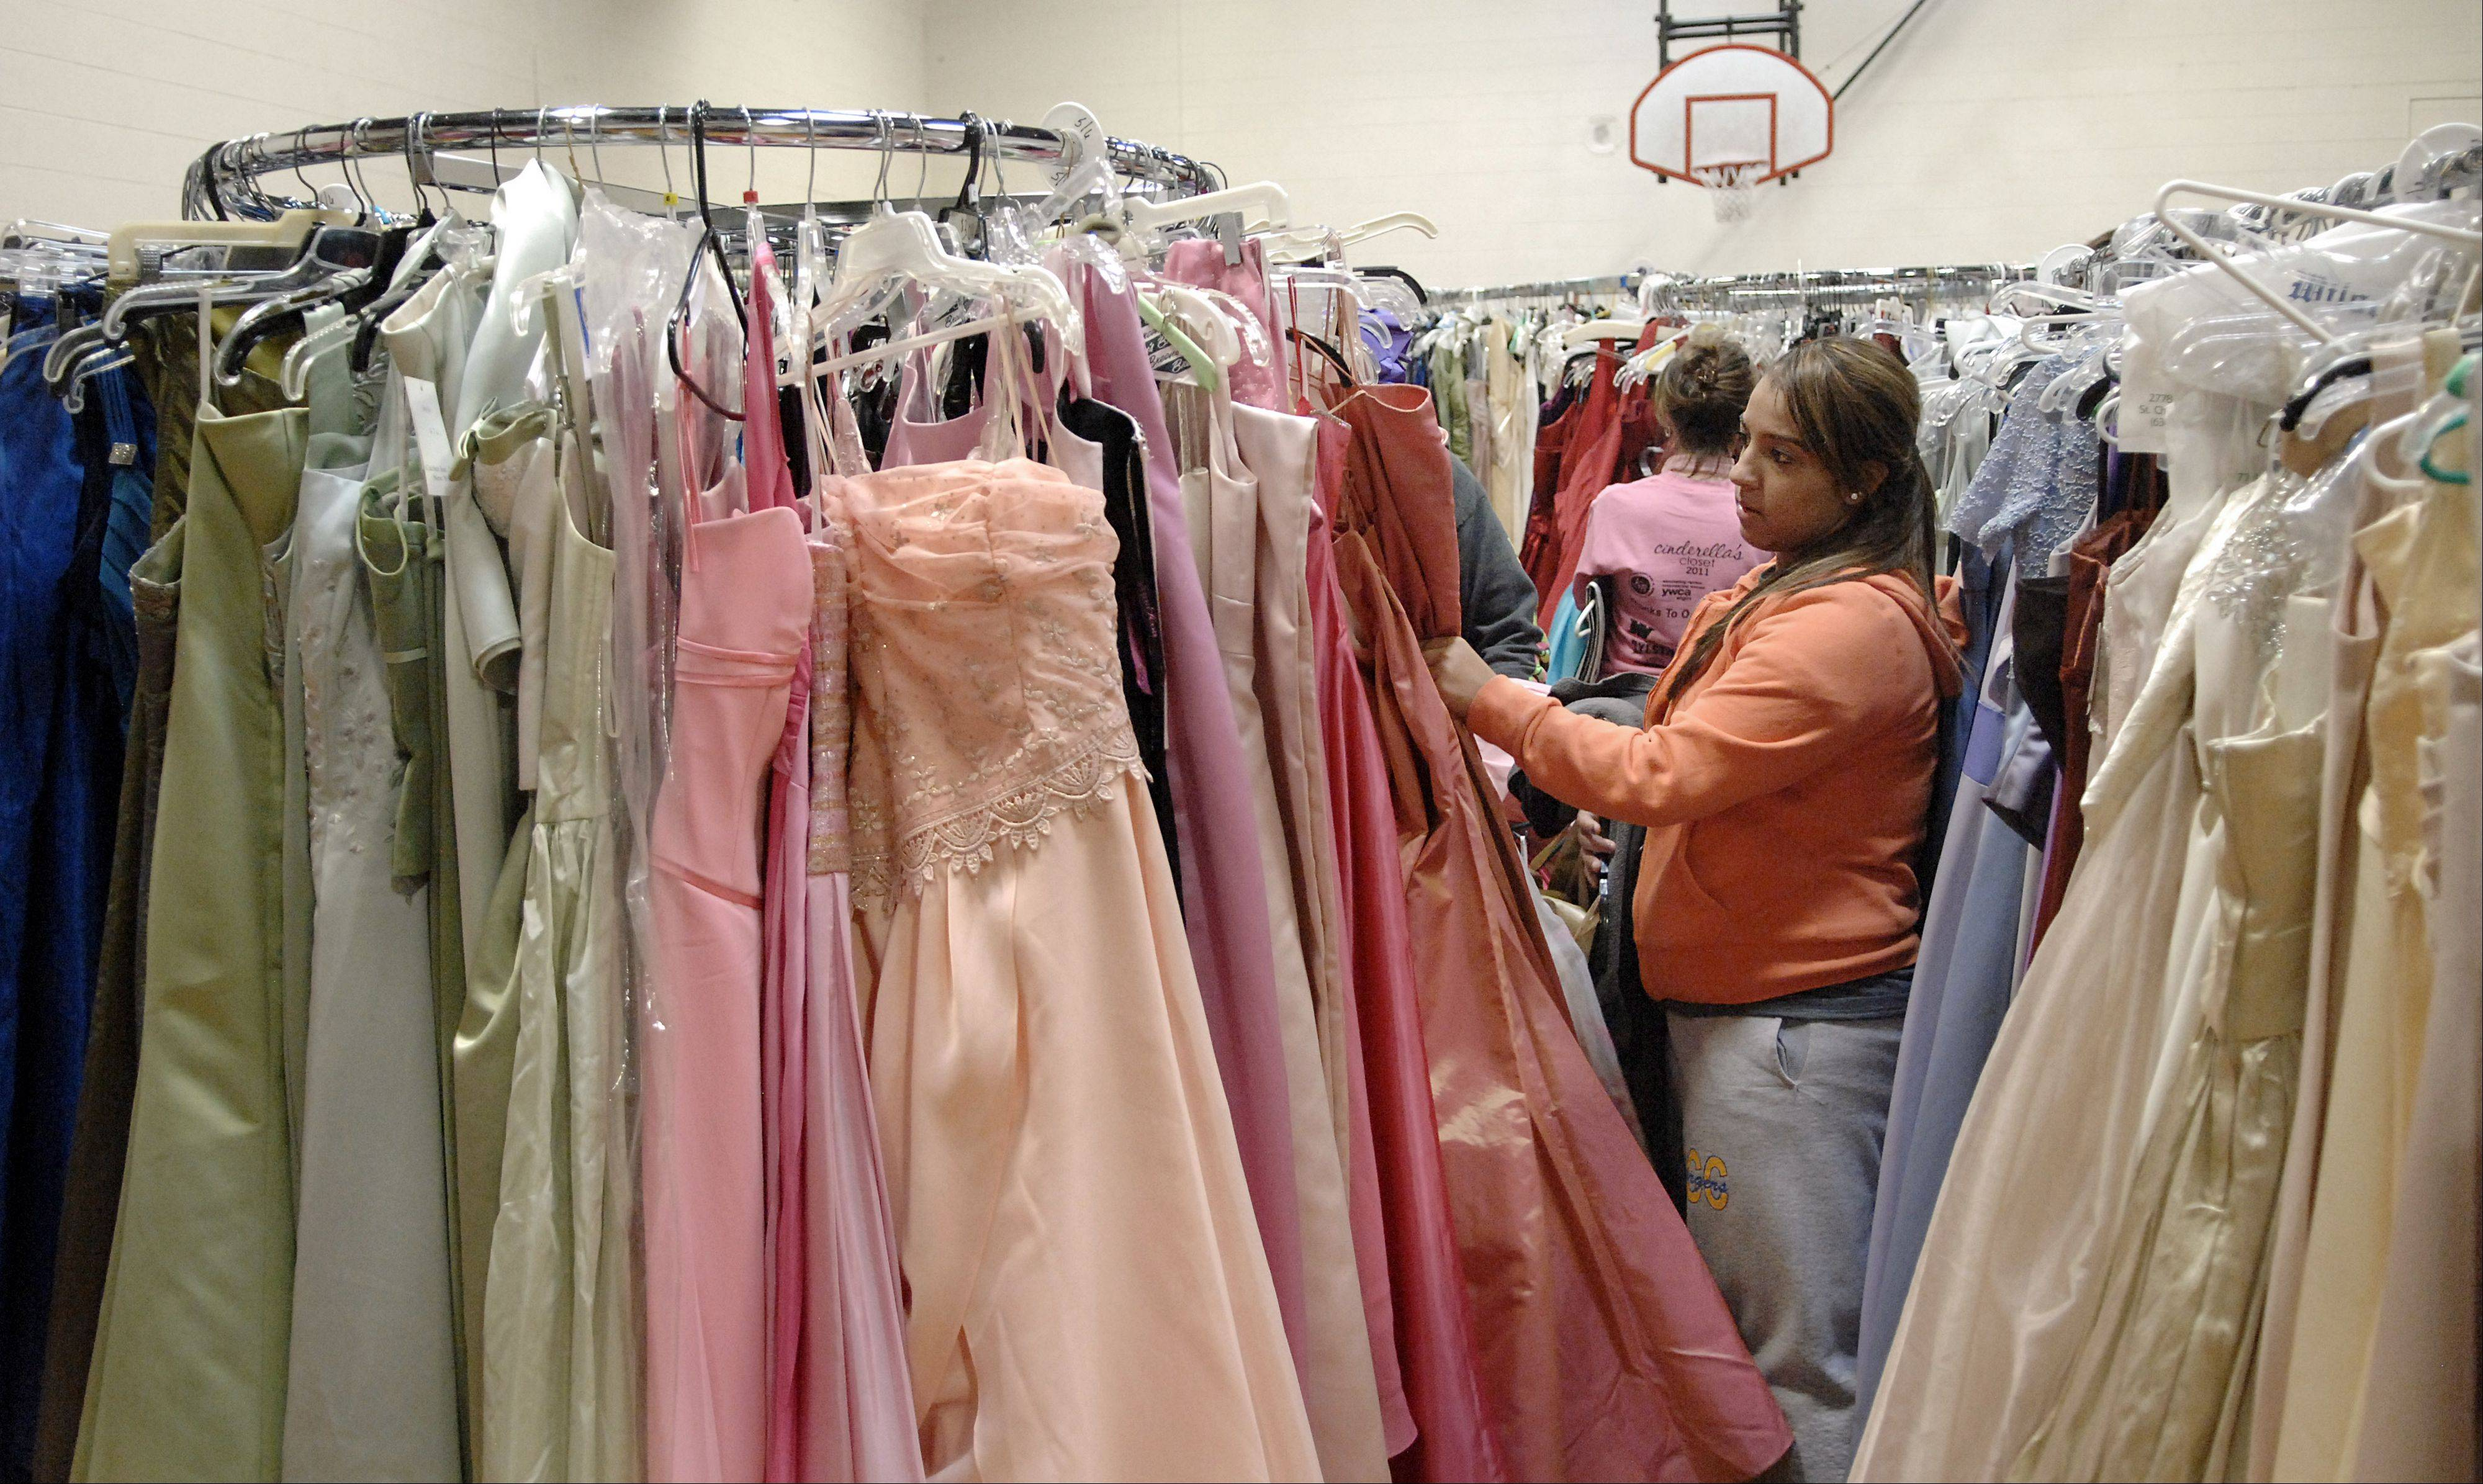 The Junior League of Kane and DuPage Counties sponsors or works with other groups on a variety of projects to meet needs in area communities, including creating the Cinderella's Closet program that helps girls who otherwise couldn't afford to attend prom.